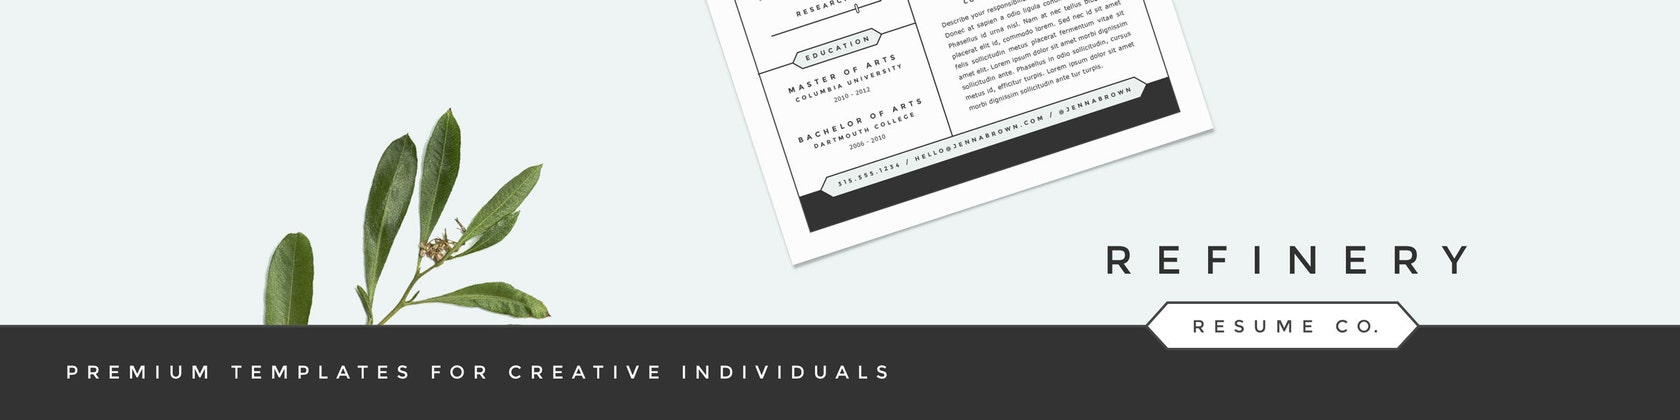 Premium Resume Templates With Character By RefineryResumeCo